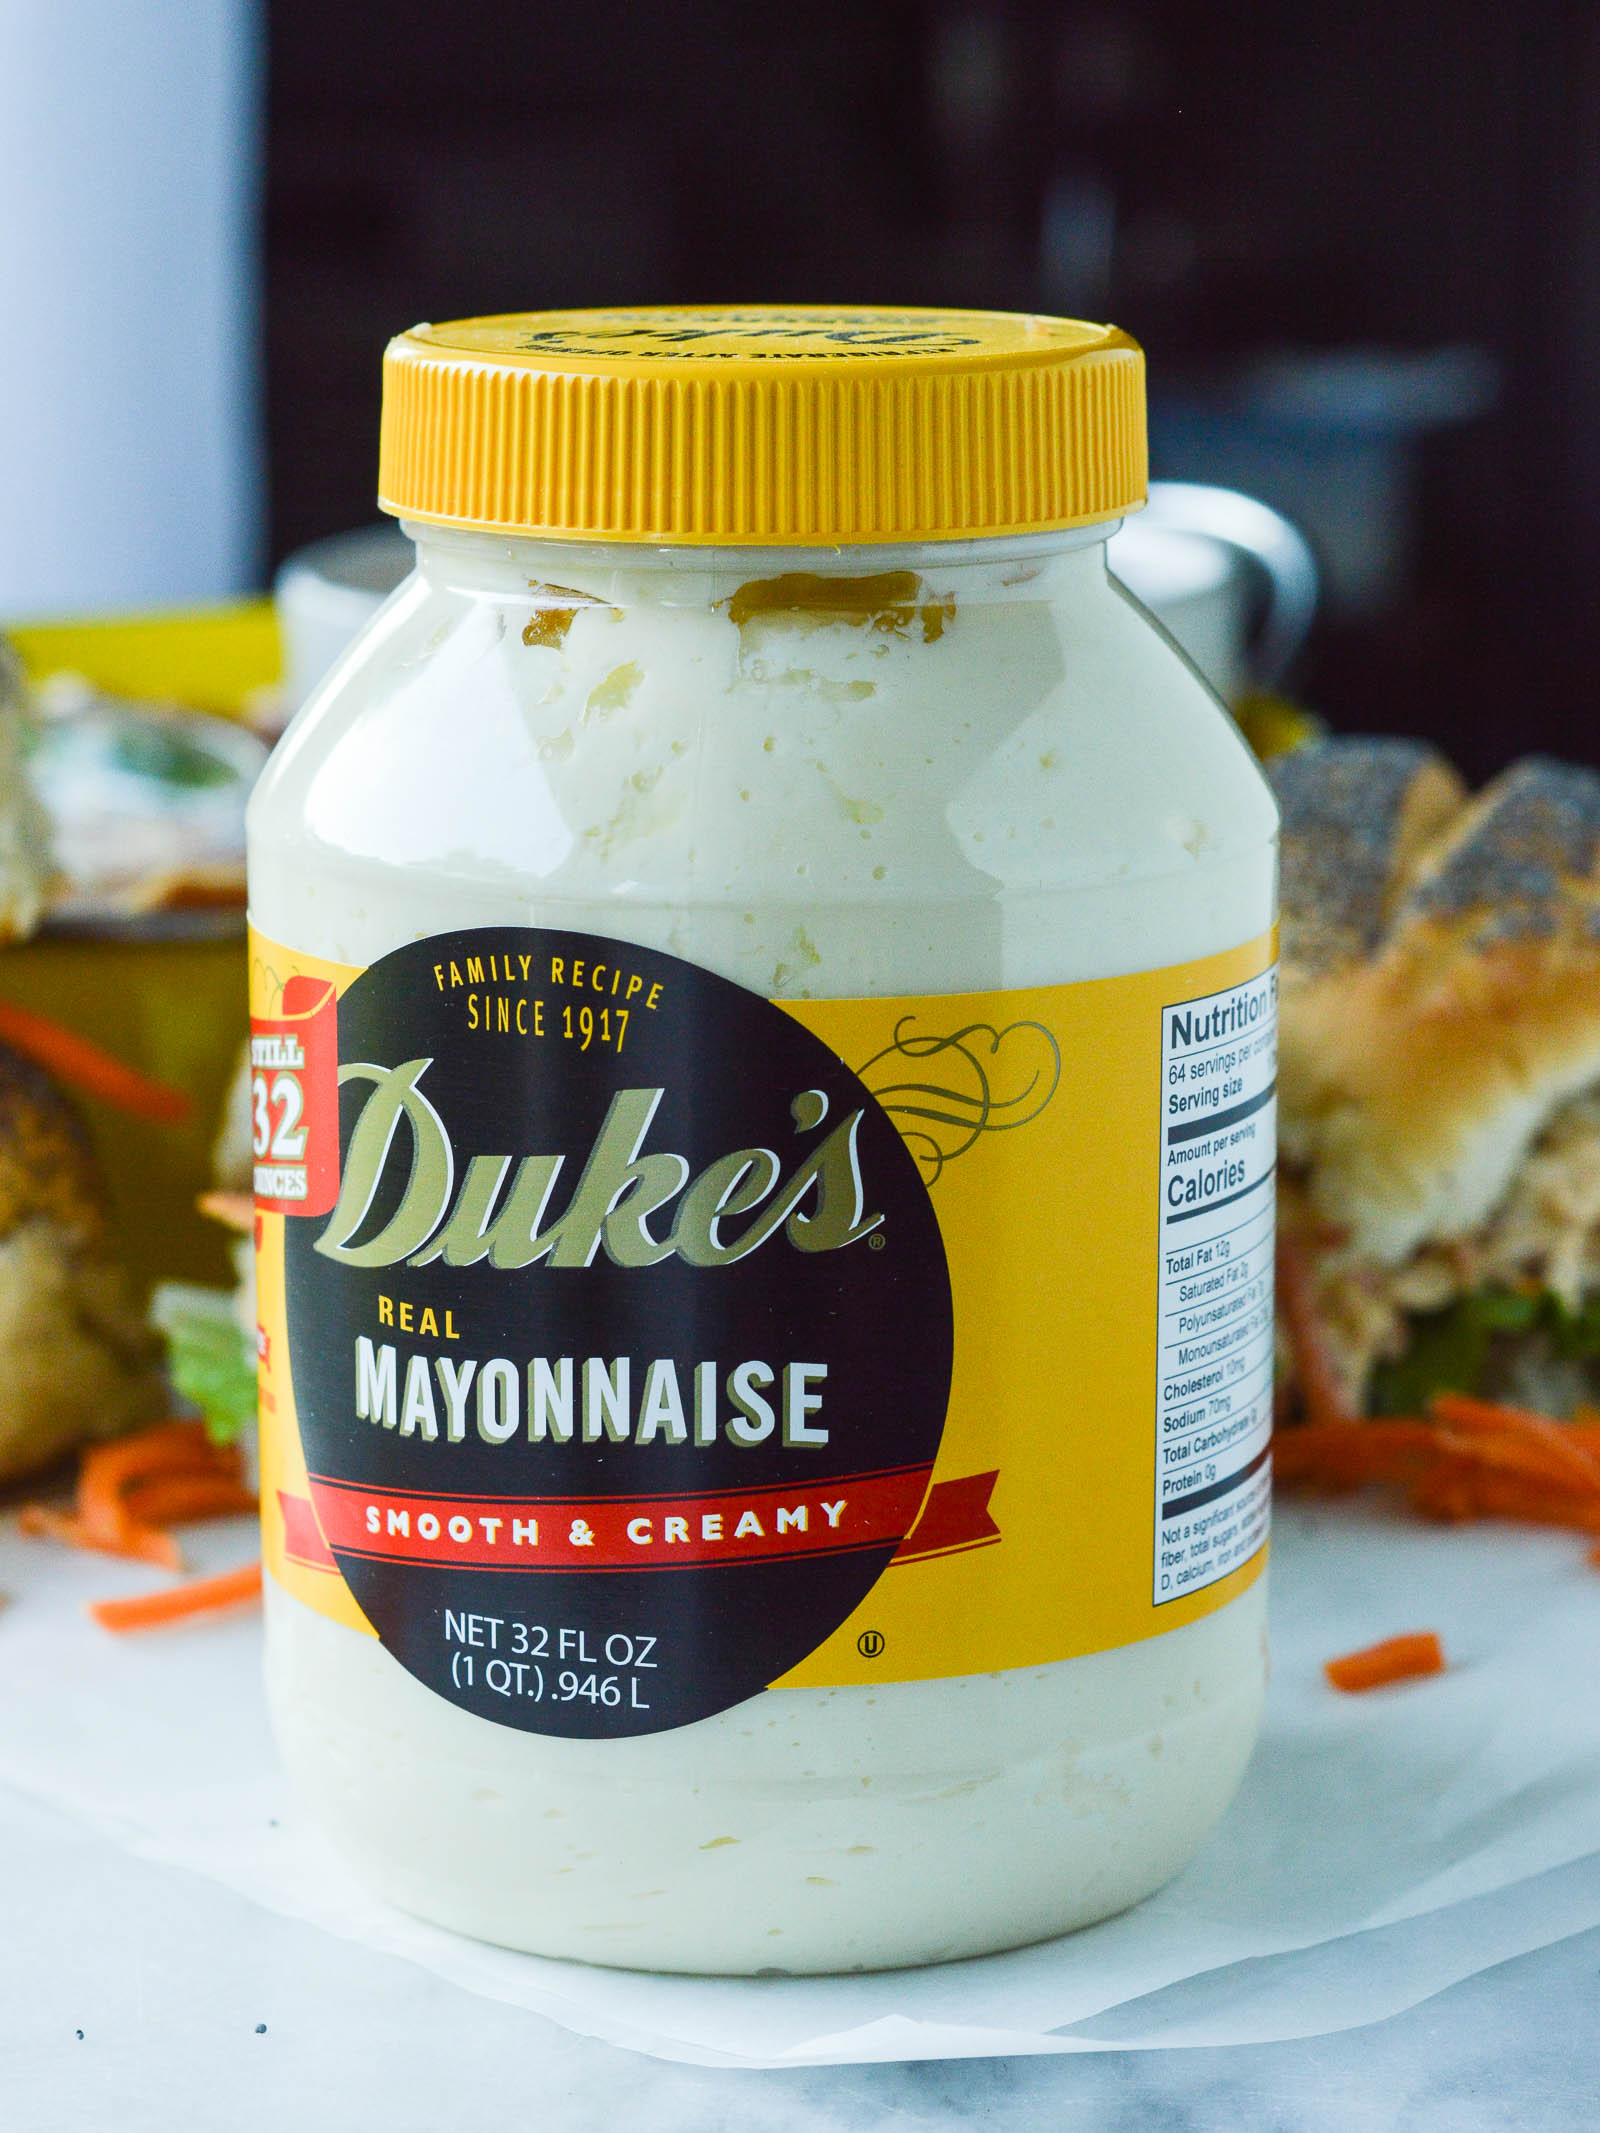 A jar of Duke's mayonnaise with Buffalo Chicken salad sandwiches in the background